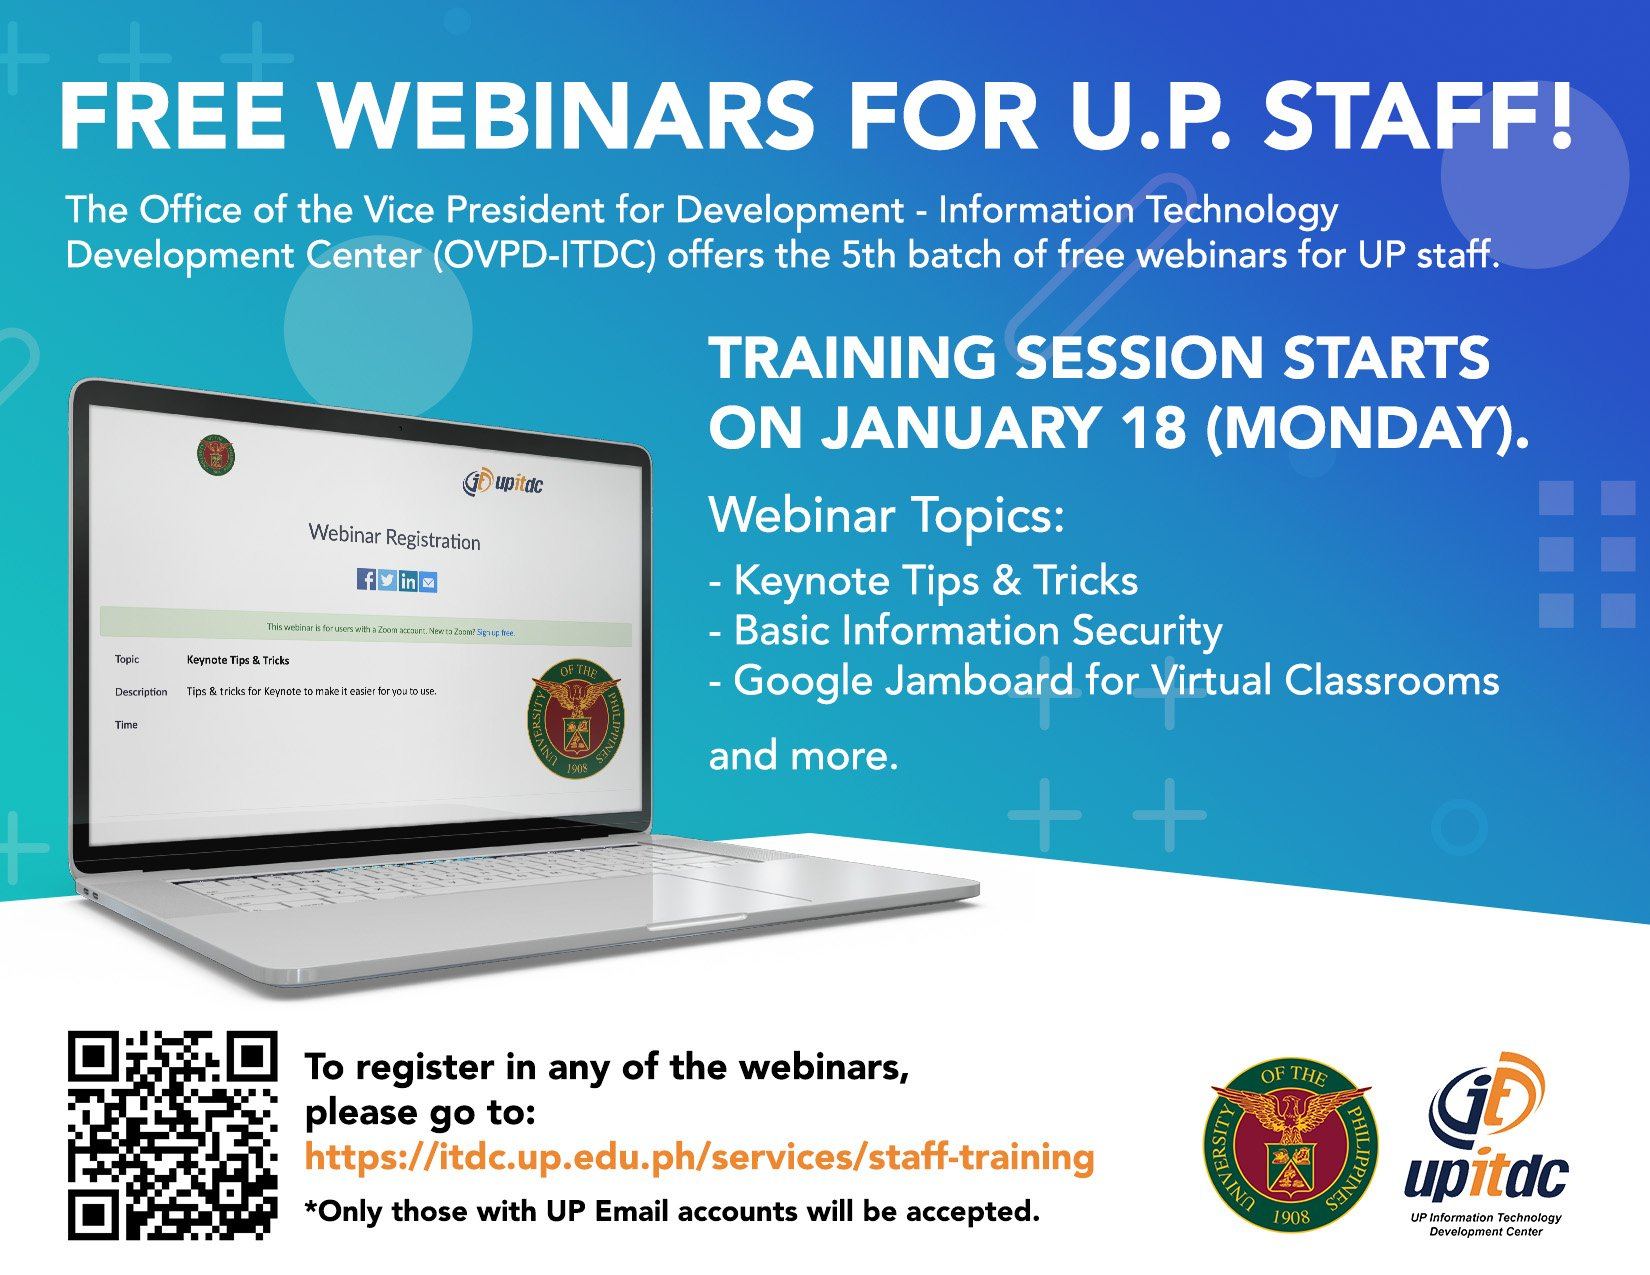 Free webinars for UP employees